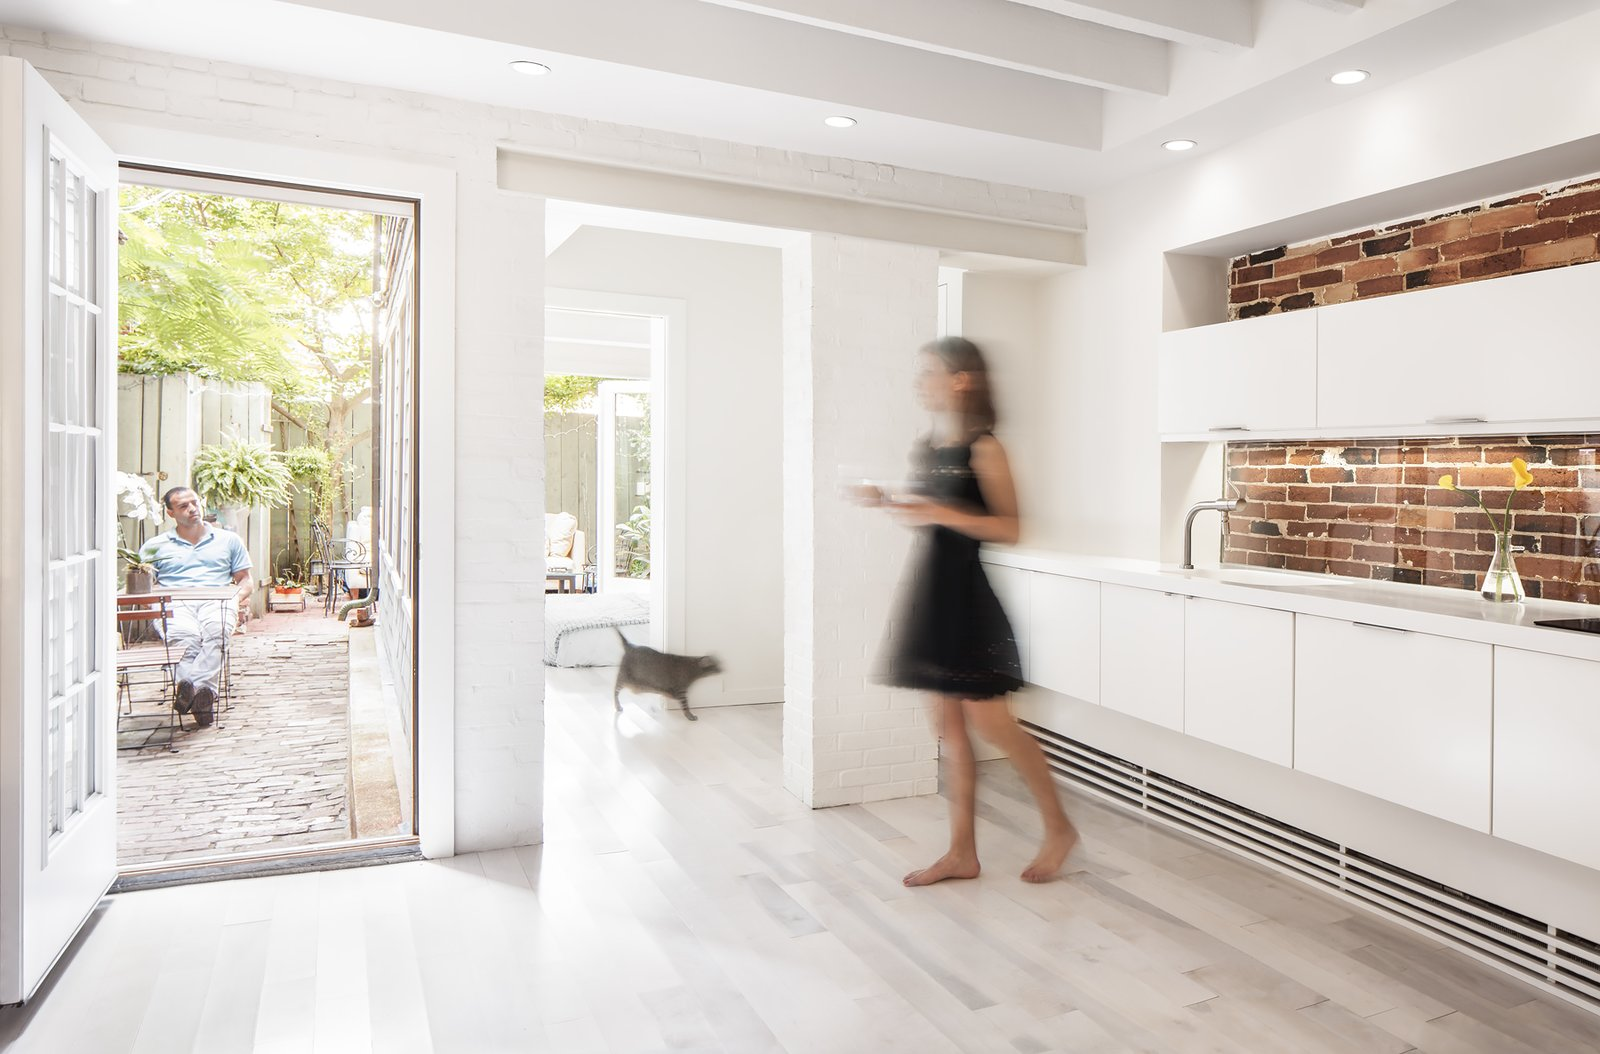 Articles about archaeological renovation adds precious space tiny boston apartment on Dwell.com